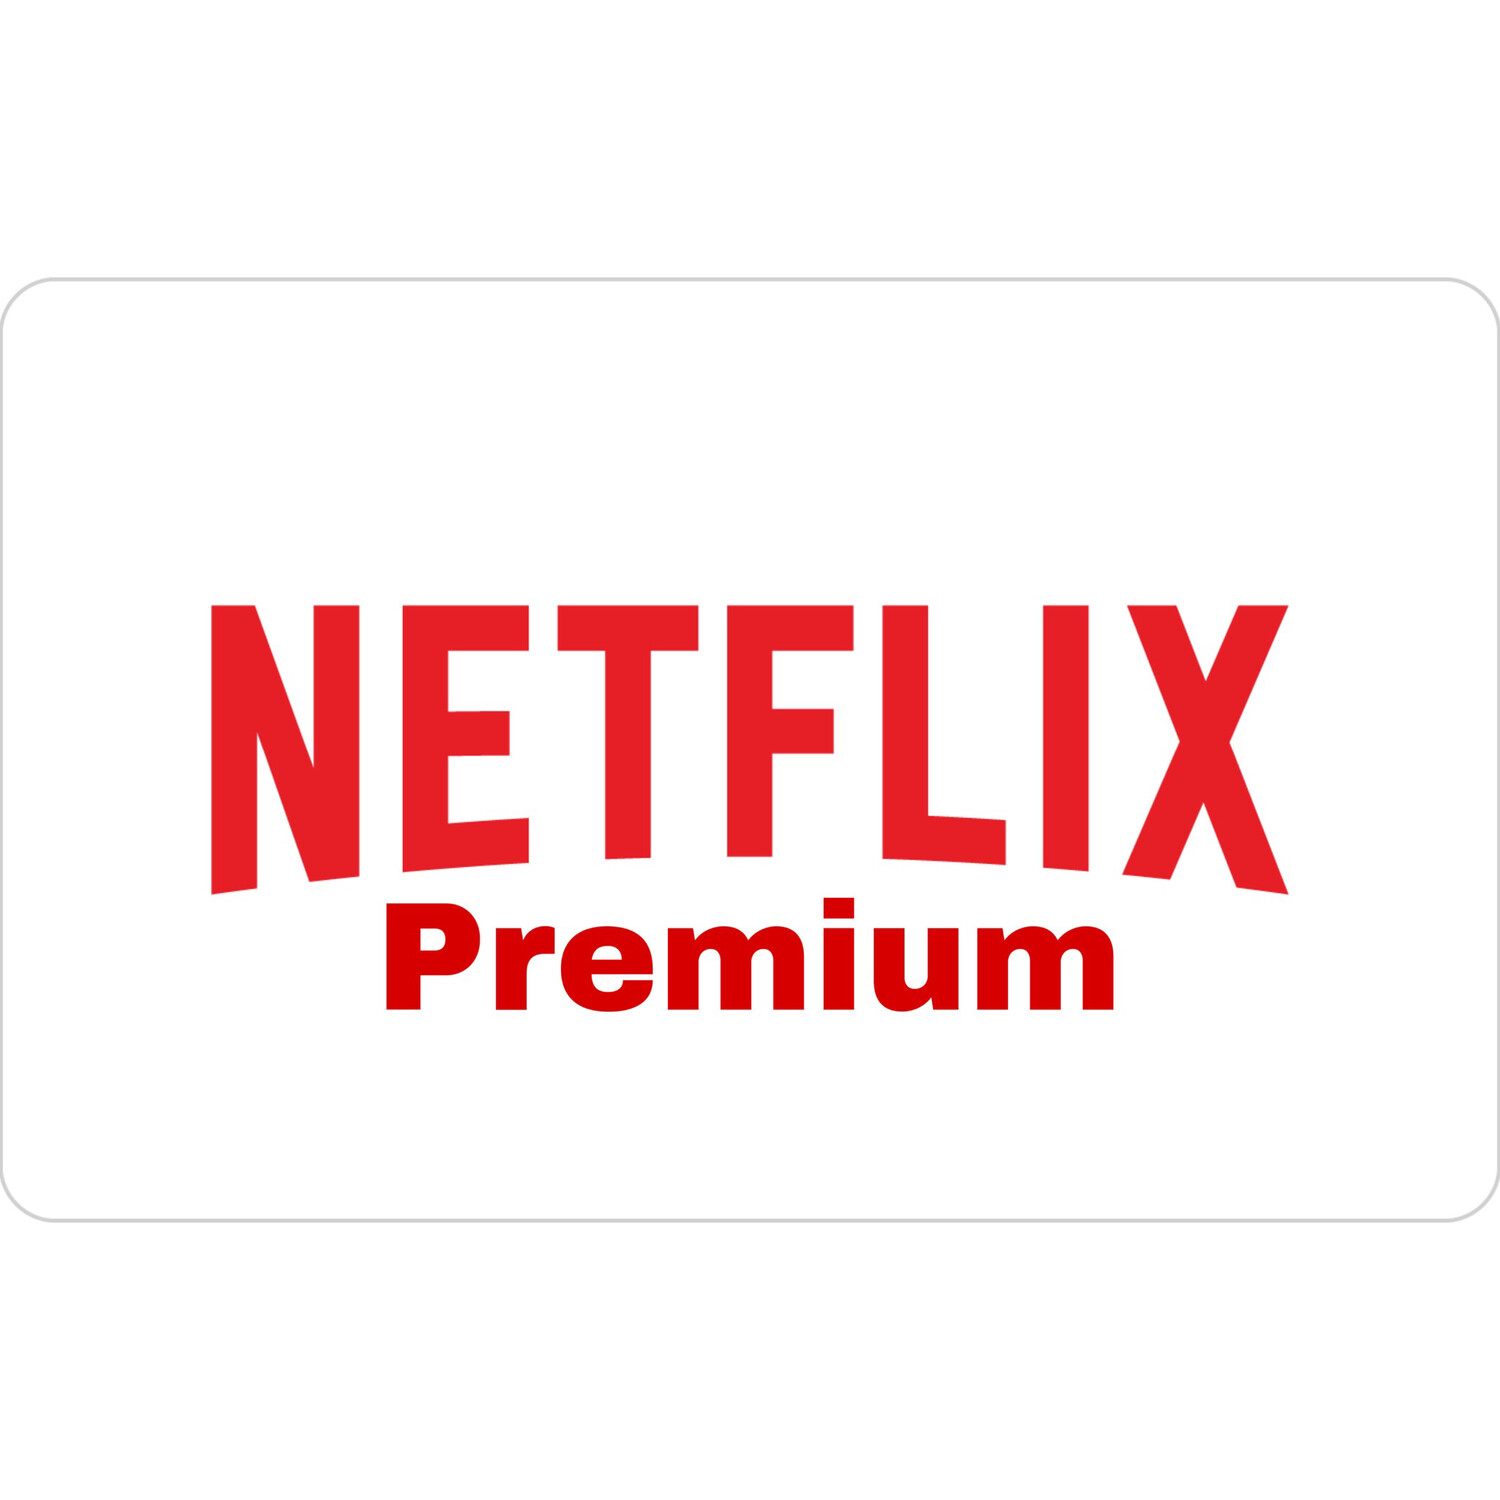 Netflix Premium 3 Bulan 5 Profil Private Account